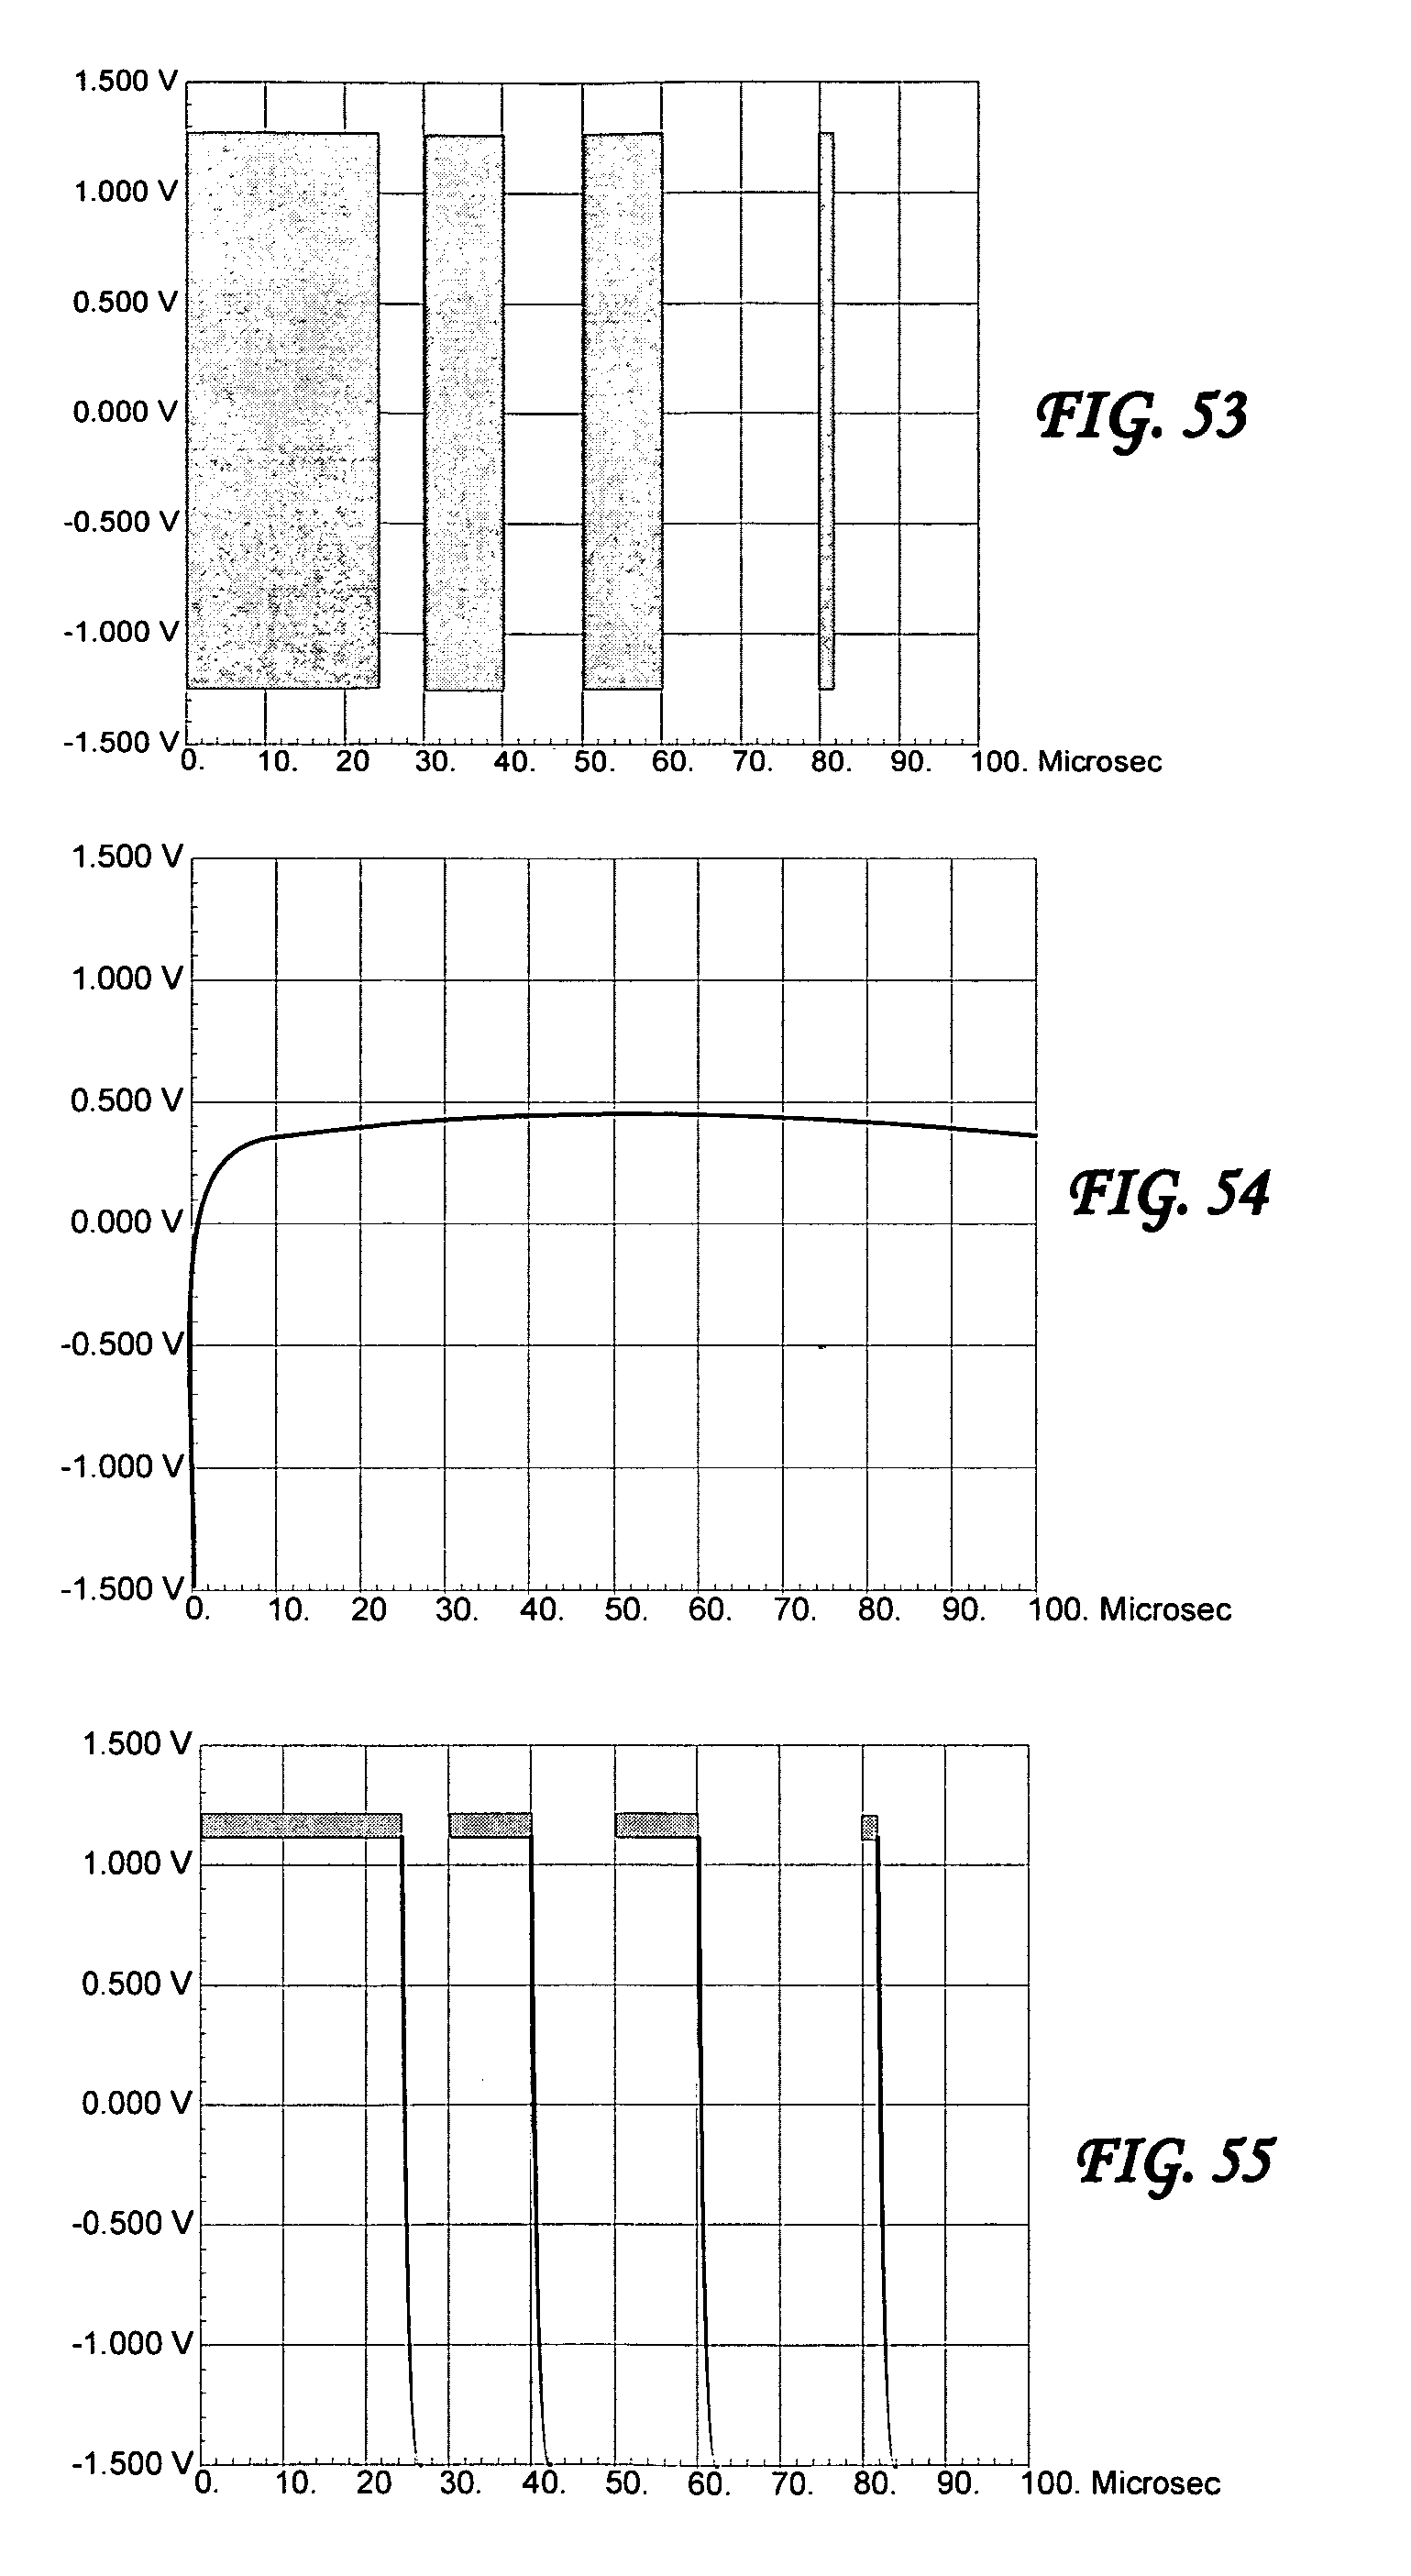 Patent Us 7103460 B1 Debounce Circuit Of Course Mitigates This Characteristic The Images